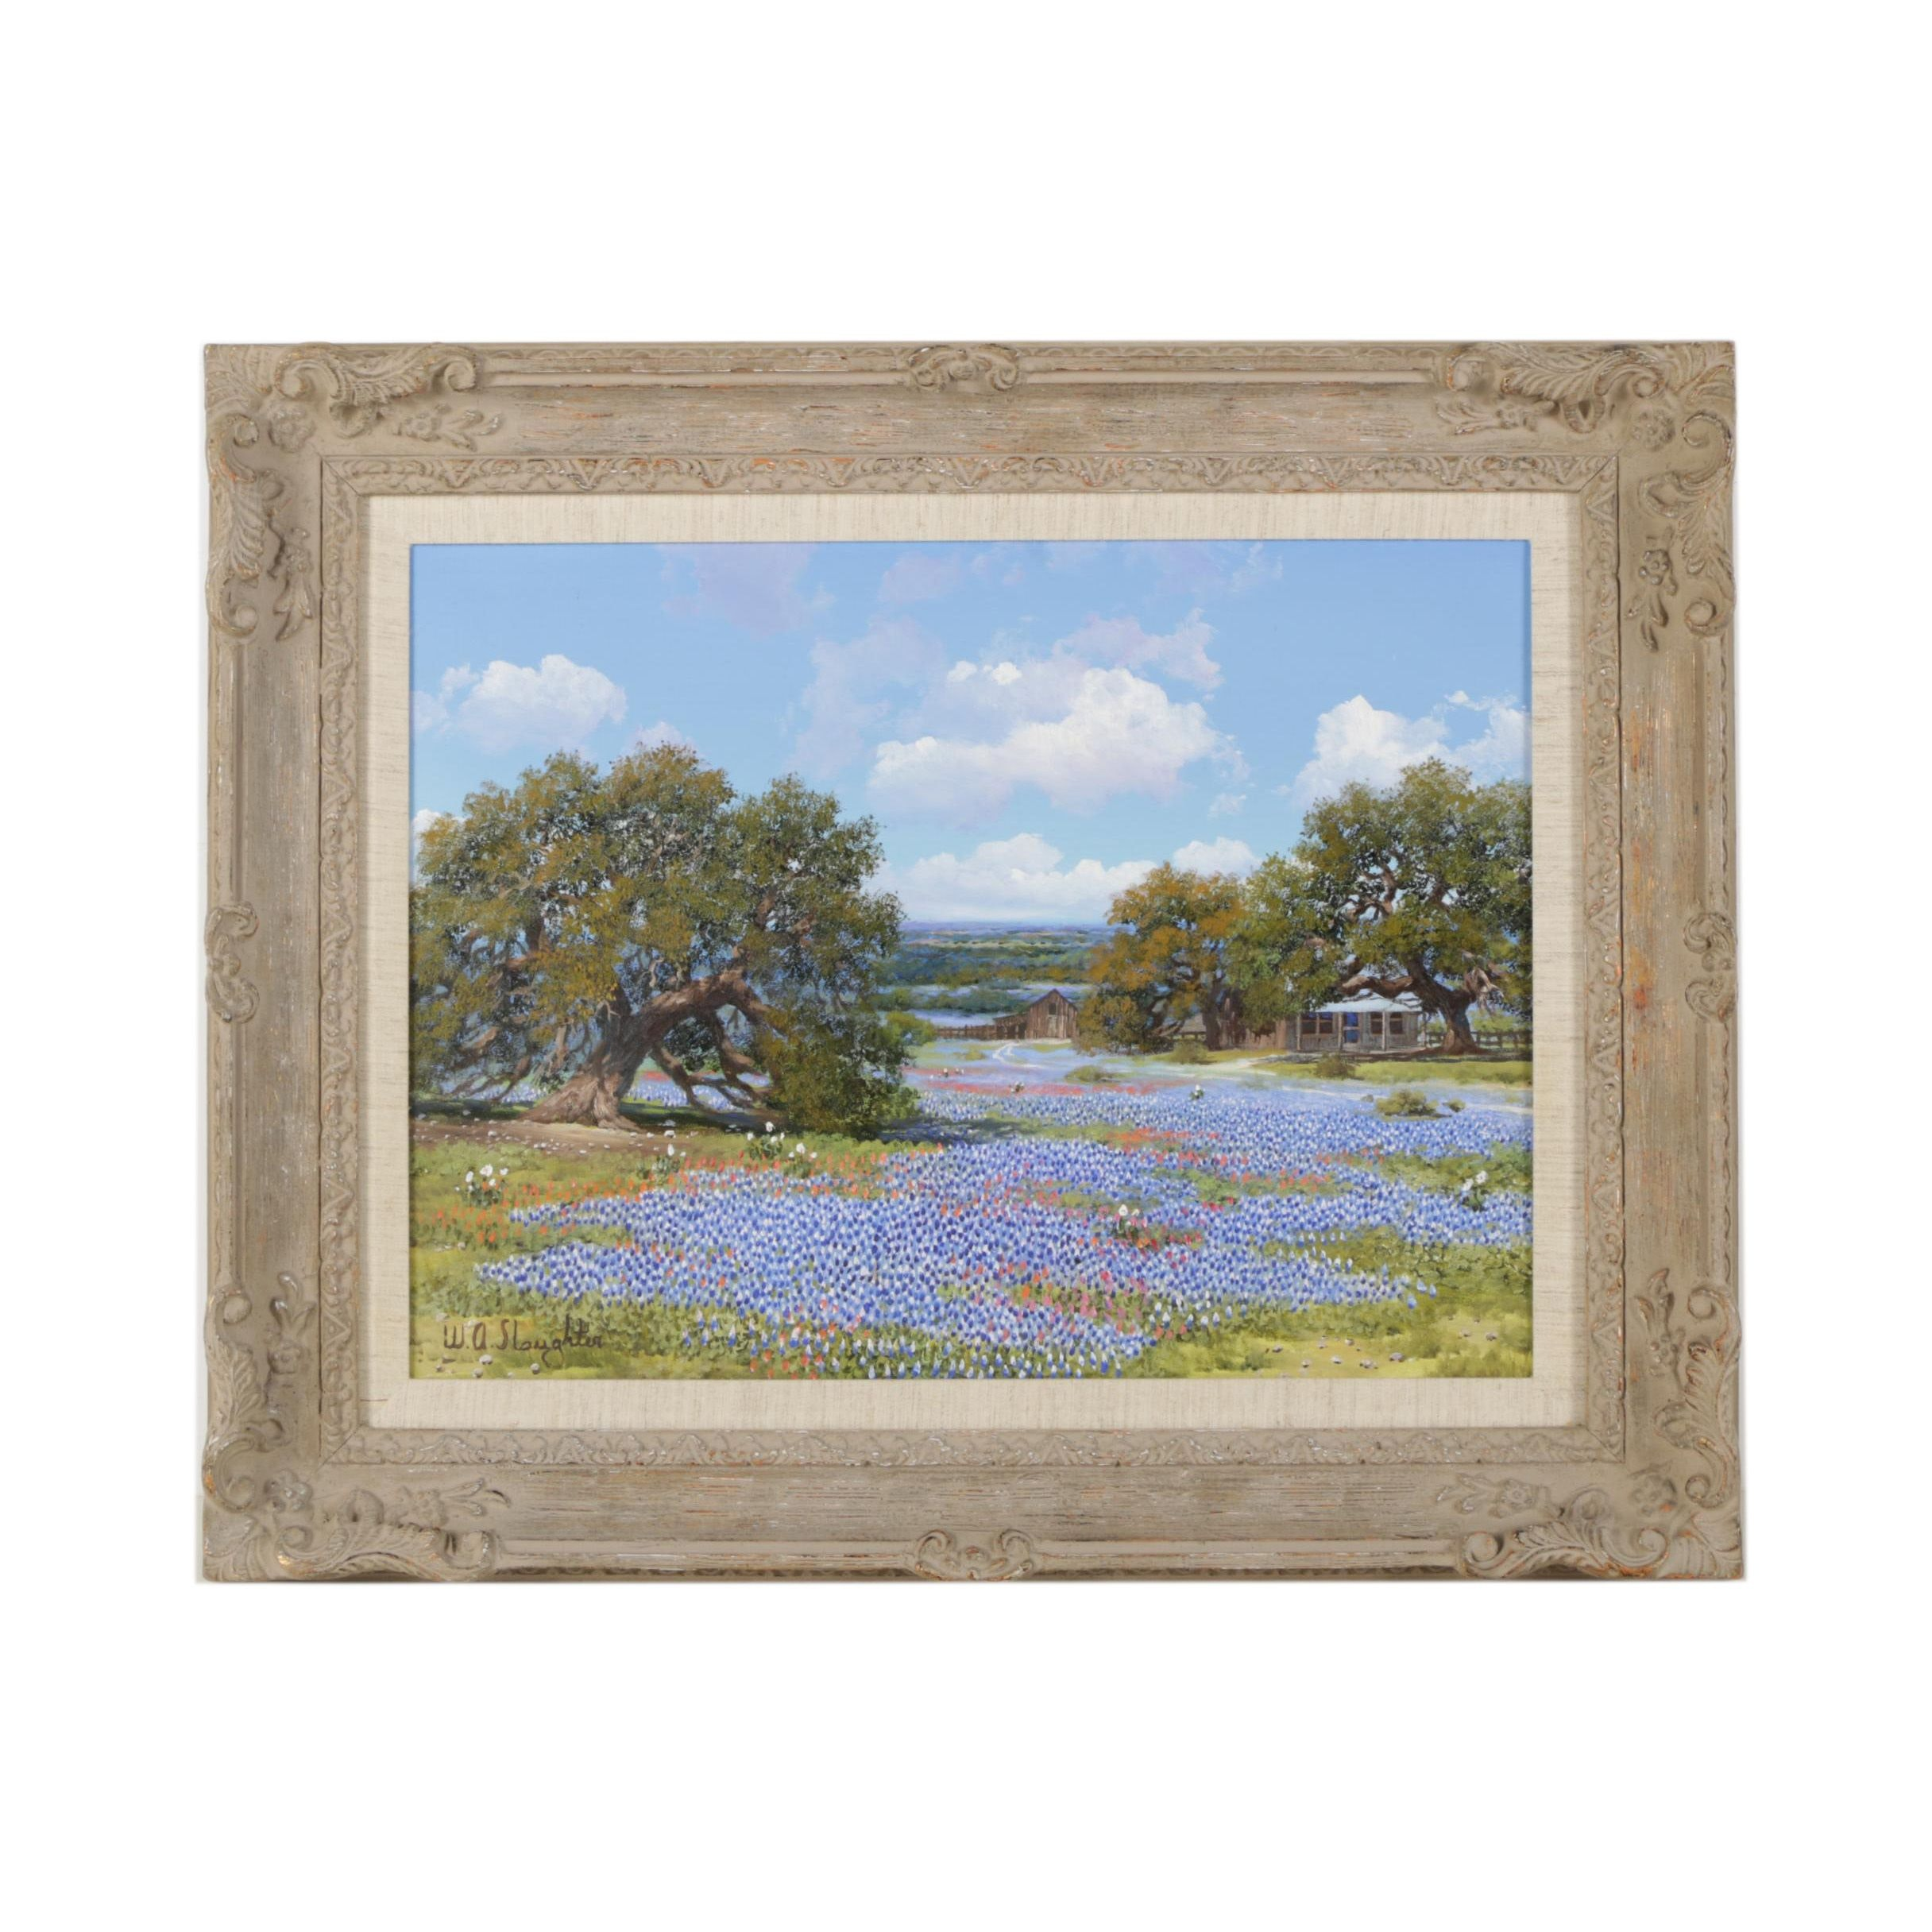 William A. Slaughter Oil on Canvas Painting of Landscape with Bluebonnets